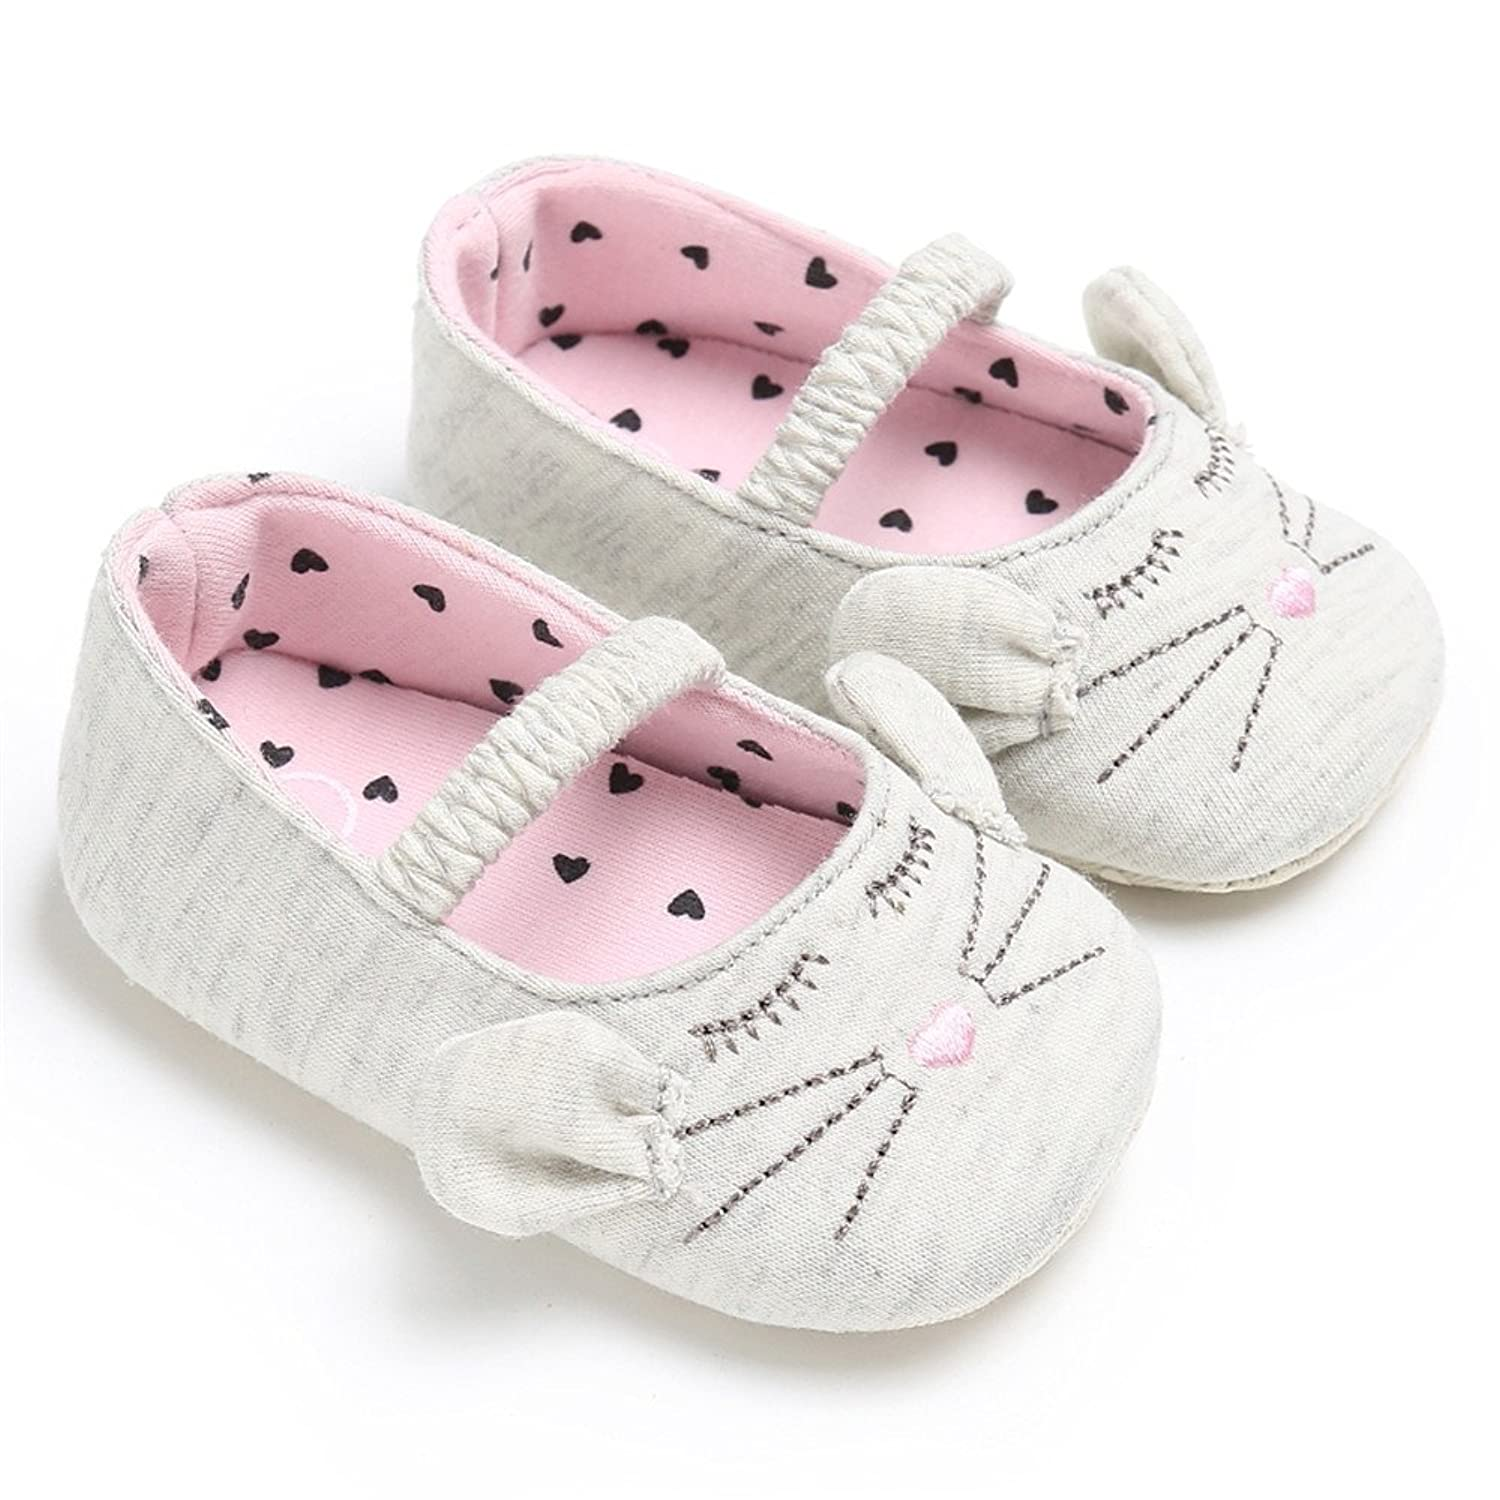 Estamico Baby Girls Soft Sole Shoes Cute Cat Ears Mary Jane Sneakers